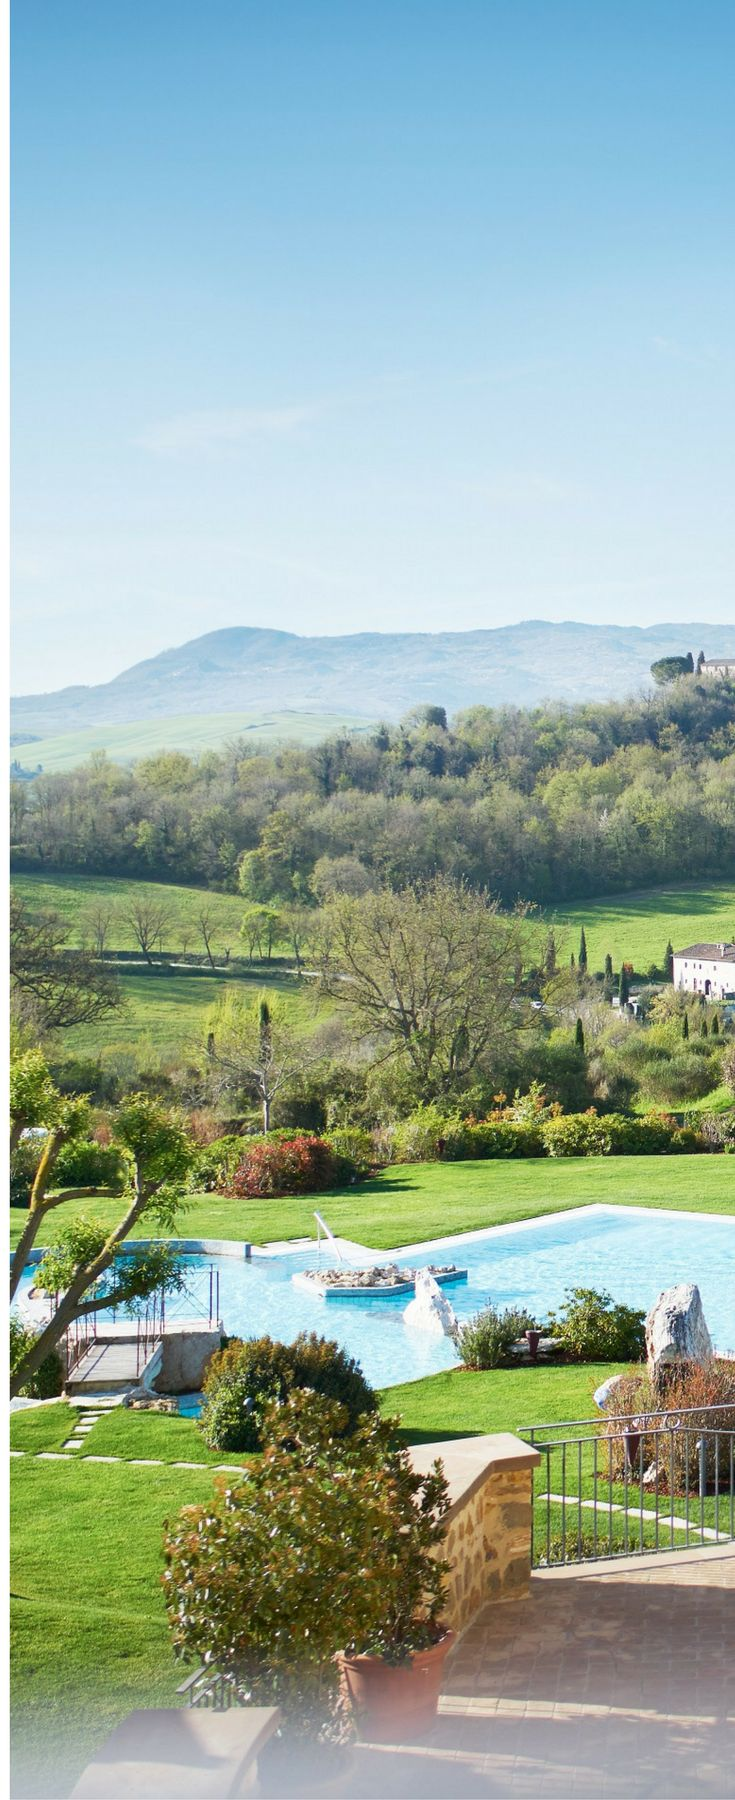 Adler Thermae in Tuscany, Italy   Thermal Hot Springs in Italy   Italian vacation ideas   Italian holiday ideas   Luxury holidays in Italy Tuscan countryside   review of five star Adler Thermae